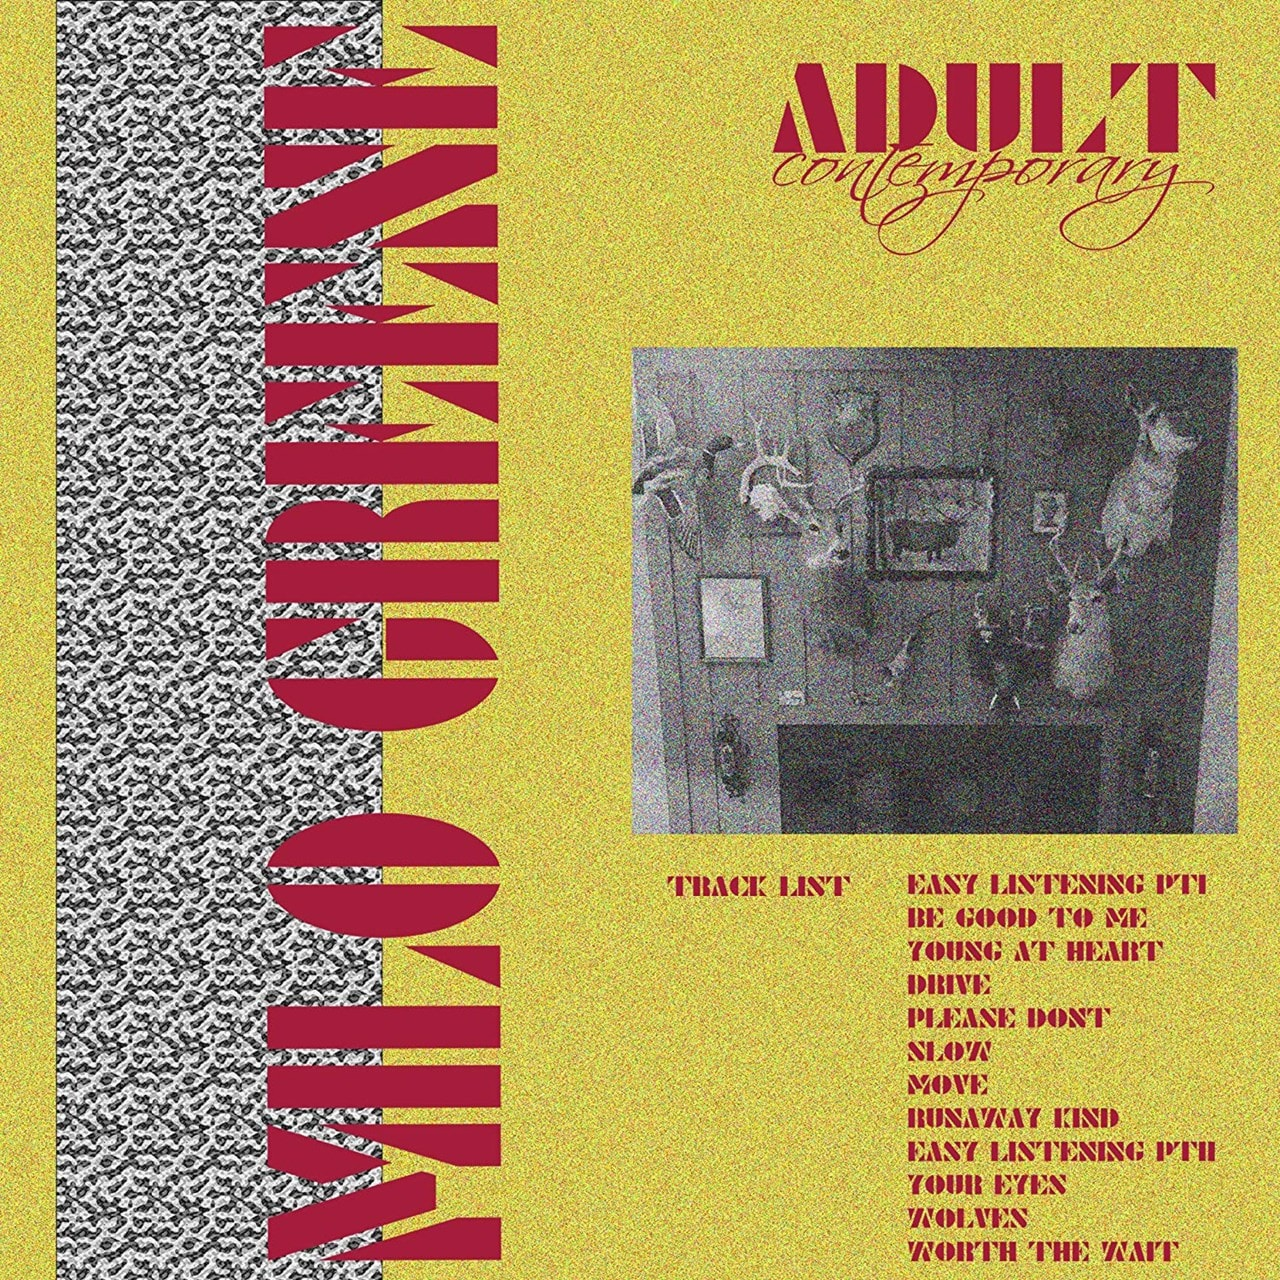 Adult Contemporary - 1